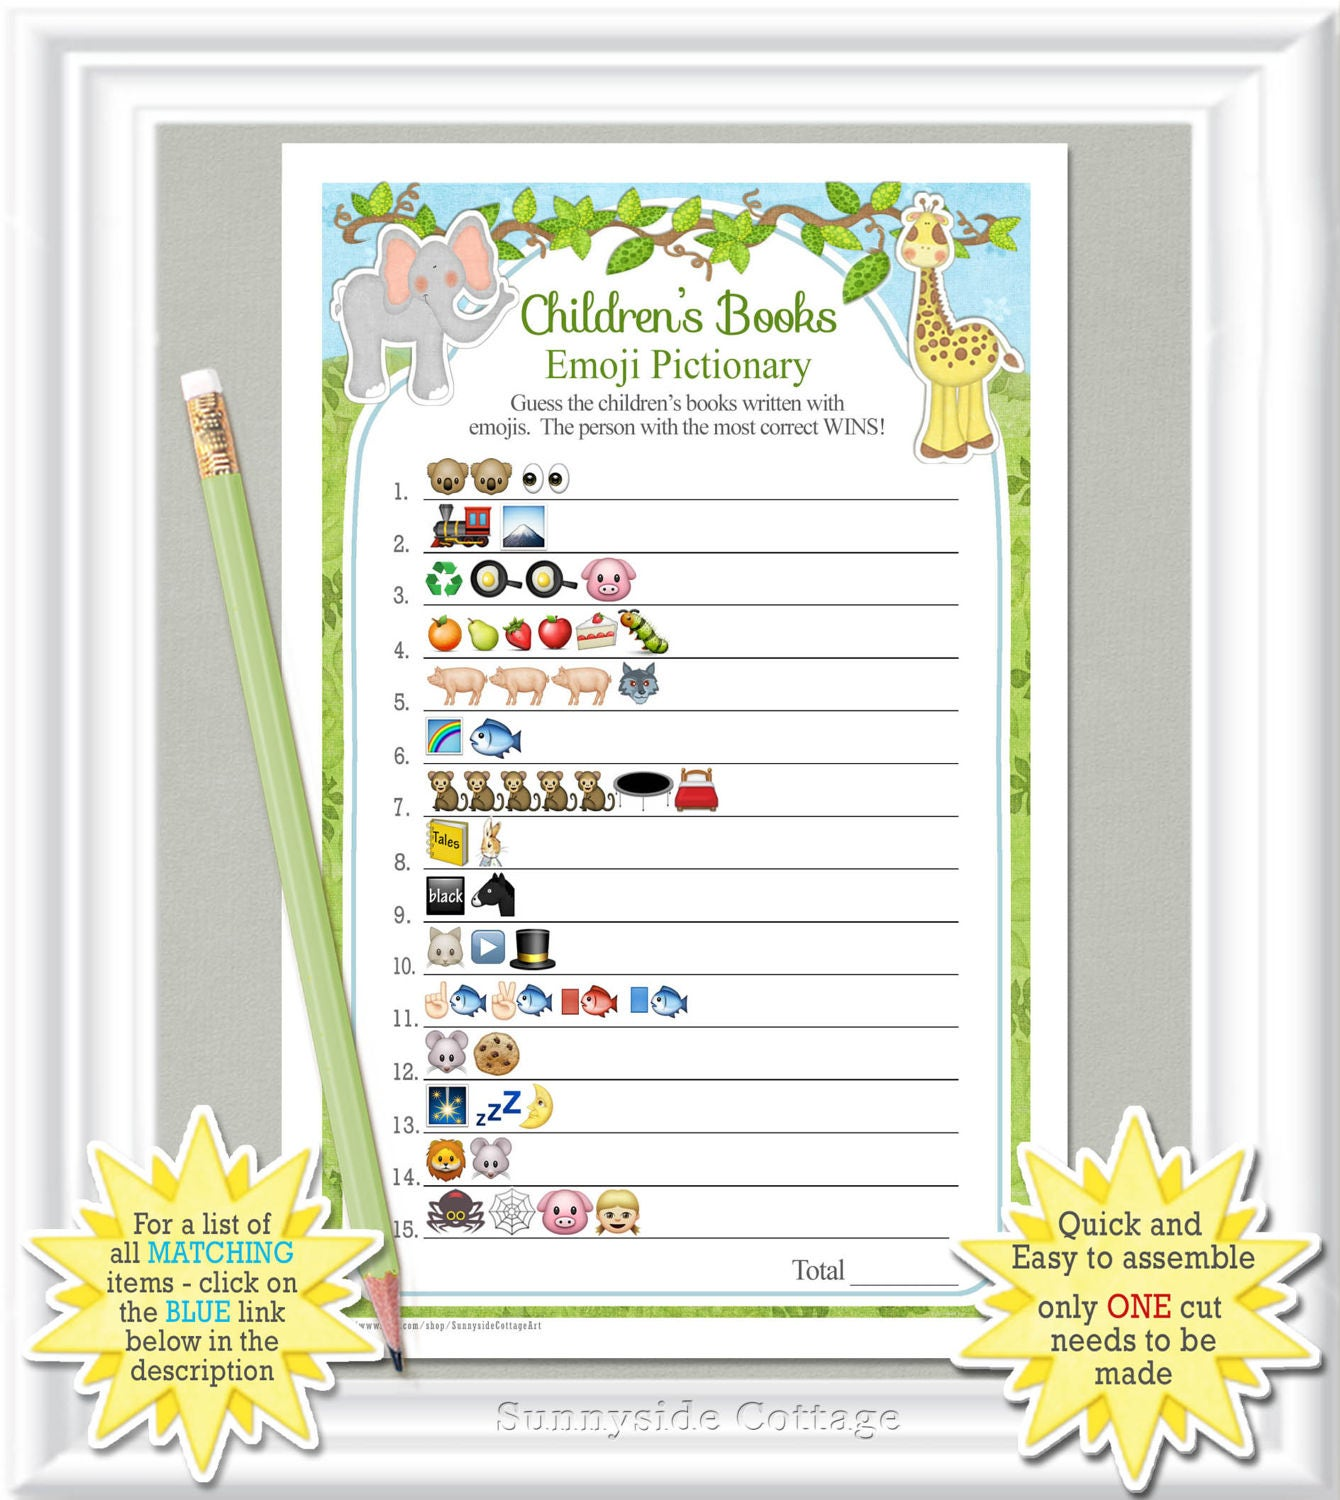 Children's Books EMOJI Pictionary Game Baby Shower Game